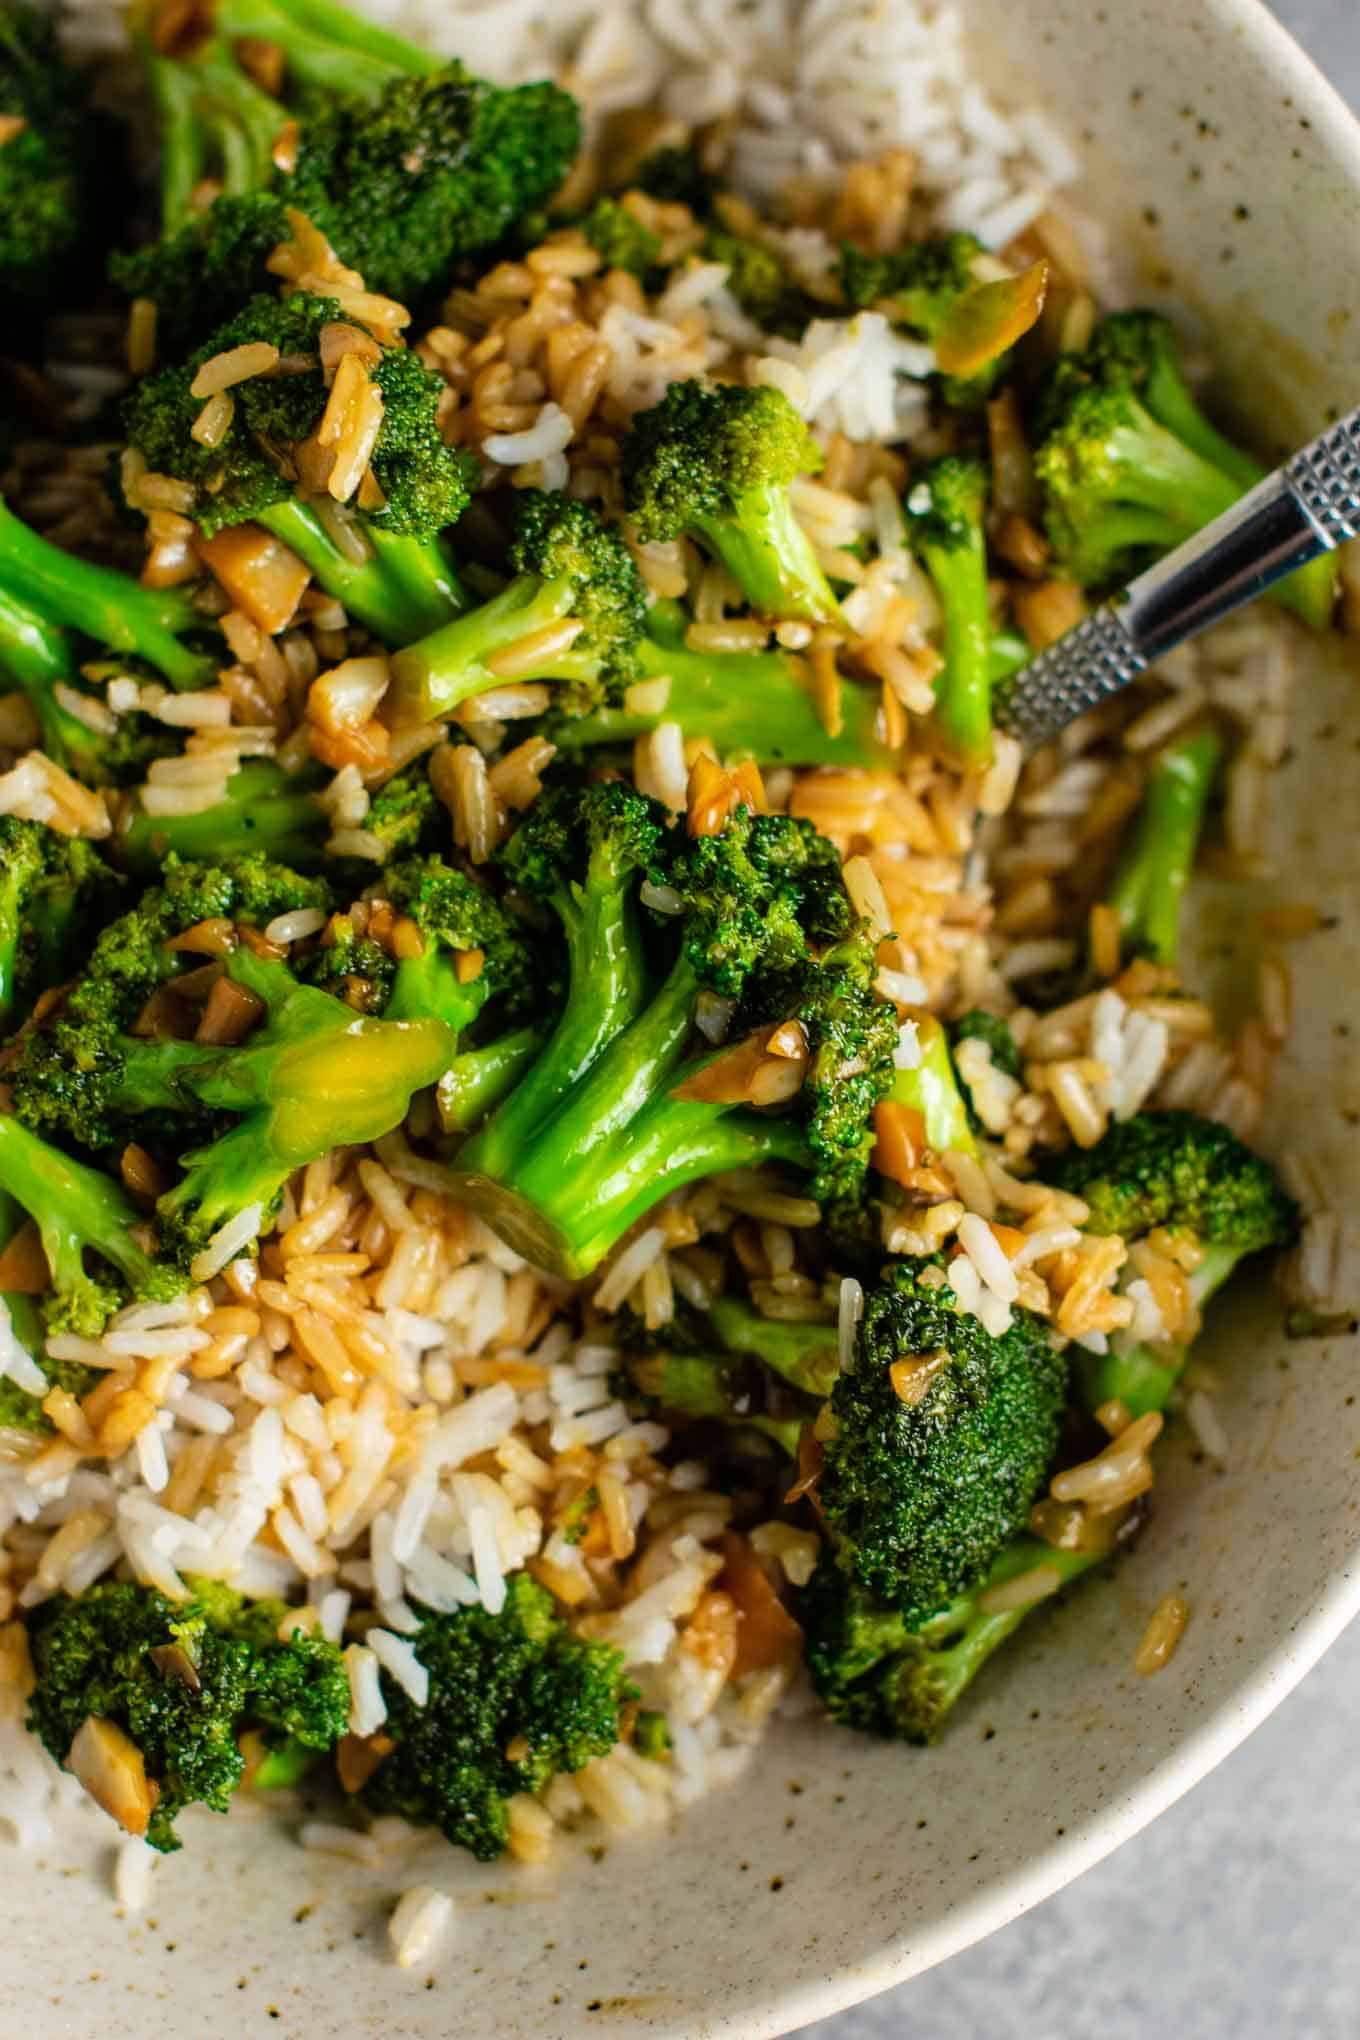 Stir fry broccoli recipe